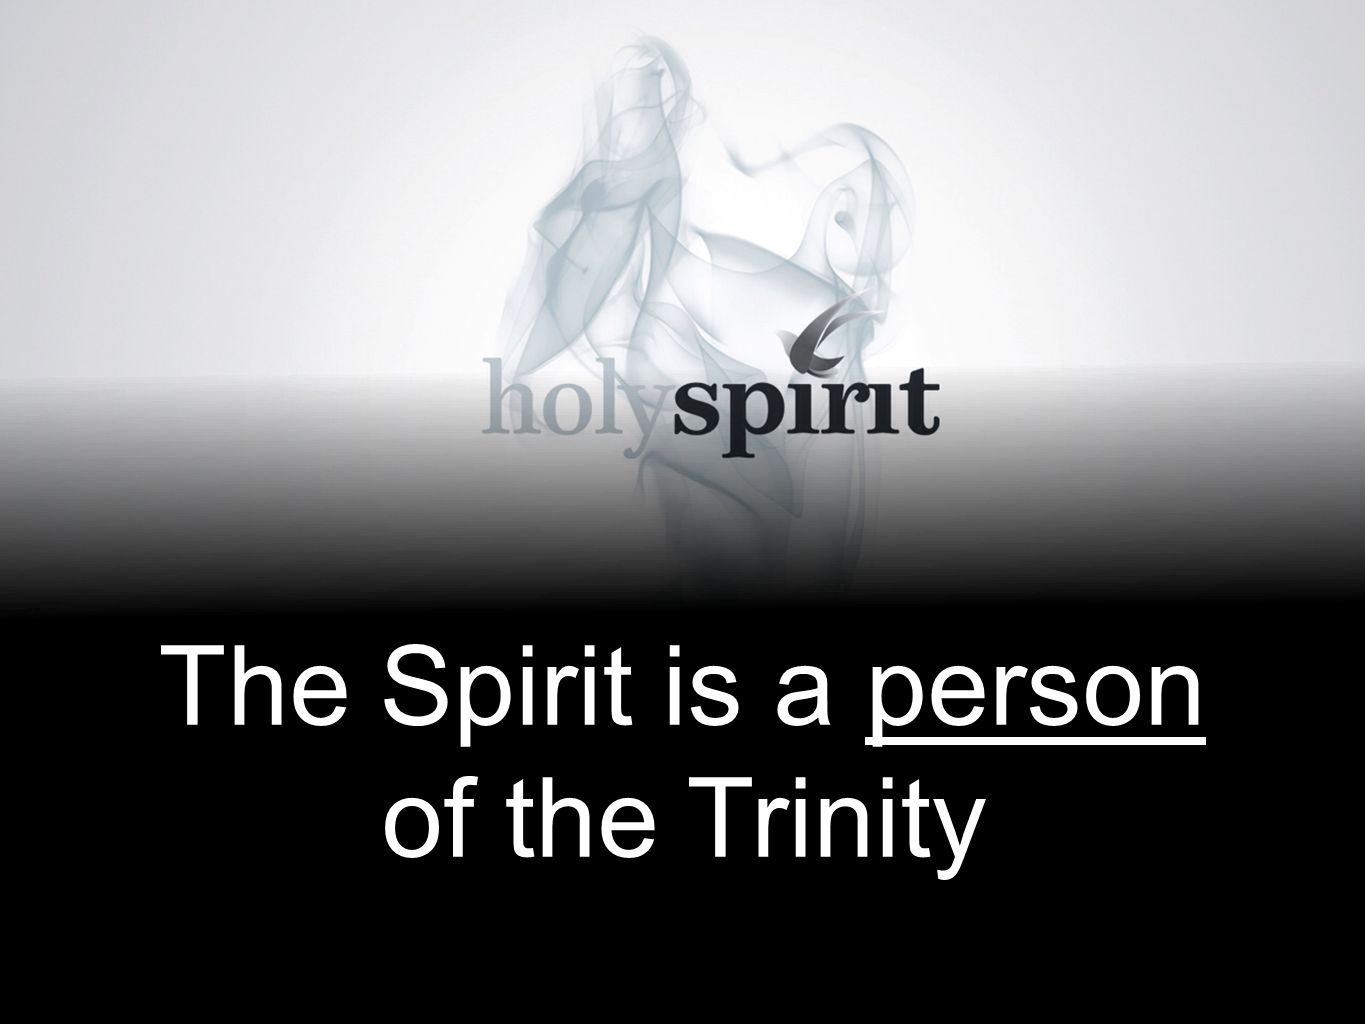 The Spirit is a person of the Trinity